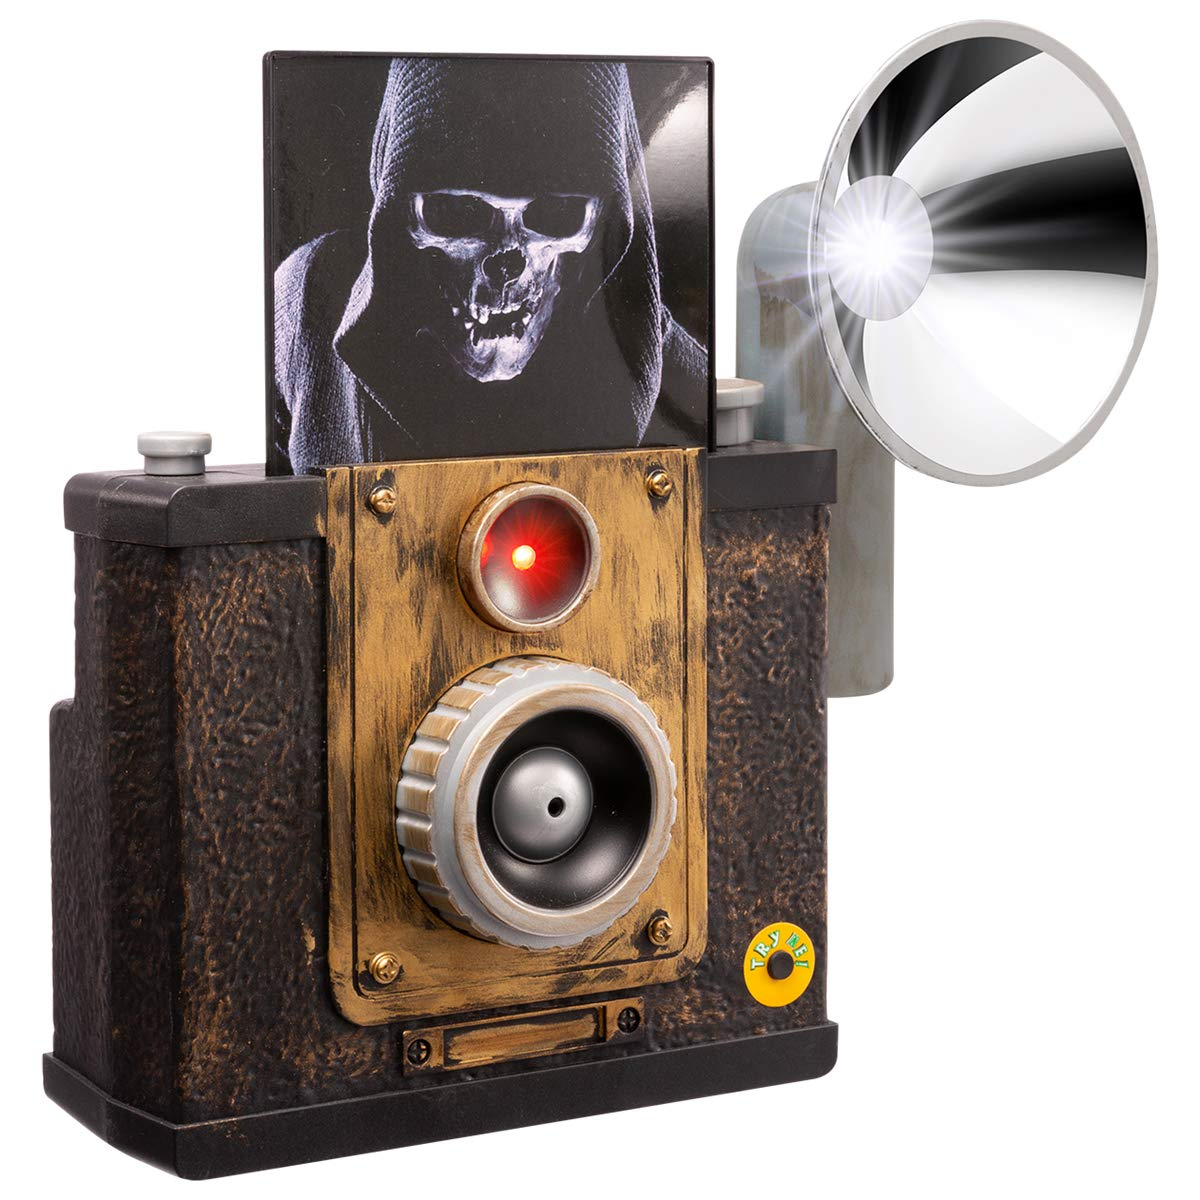 HollyHOME Halloween Decorations Gifts Vintage Haunted Instant Camera Prop with Flashes and Sound Effect for Halloween Party by HollyHOME